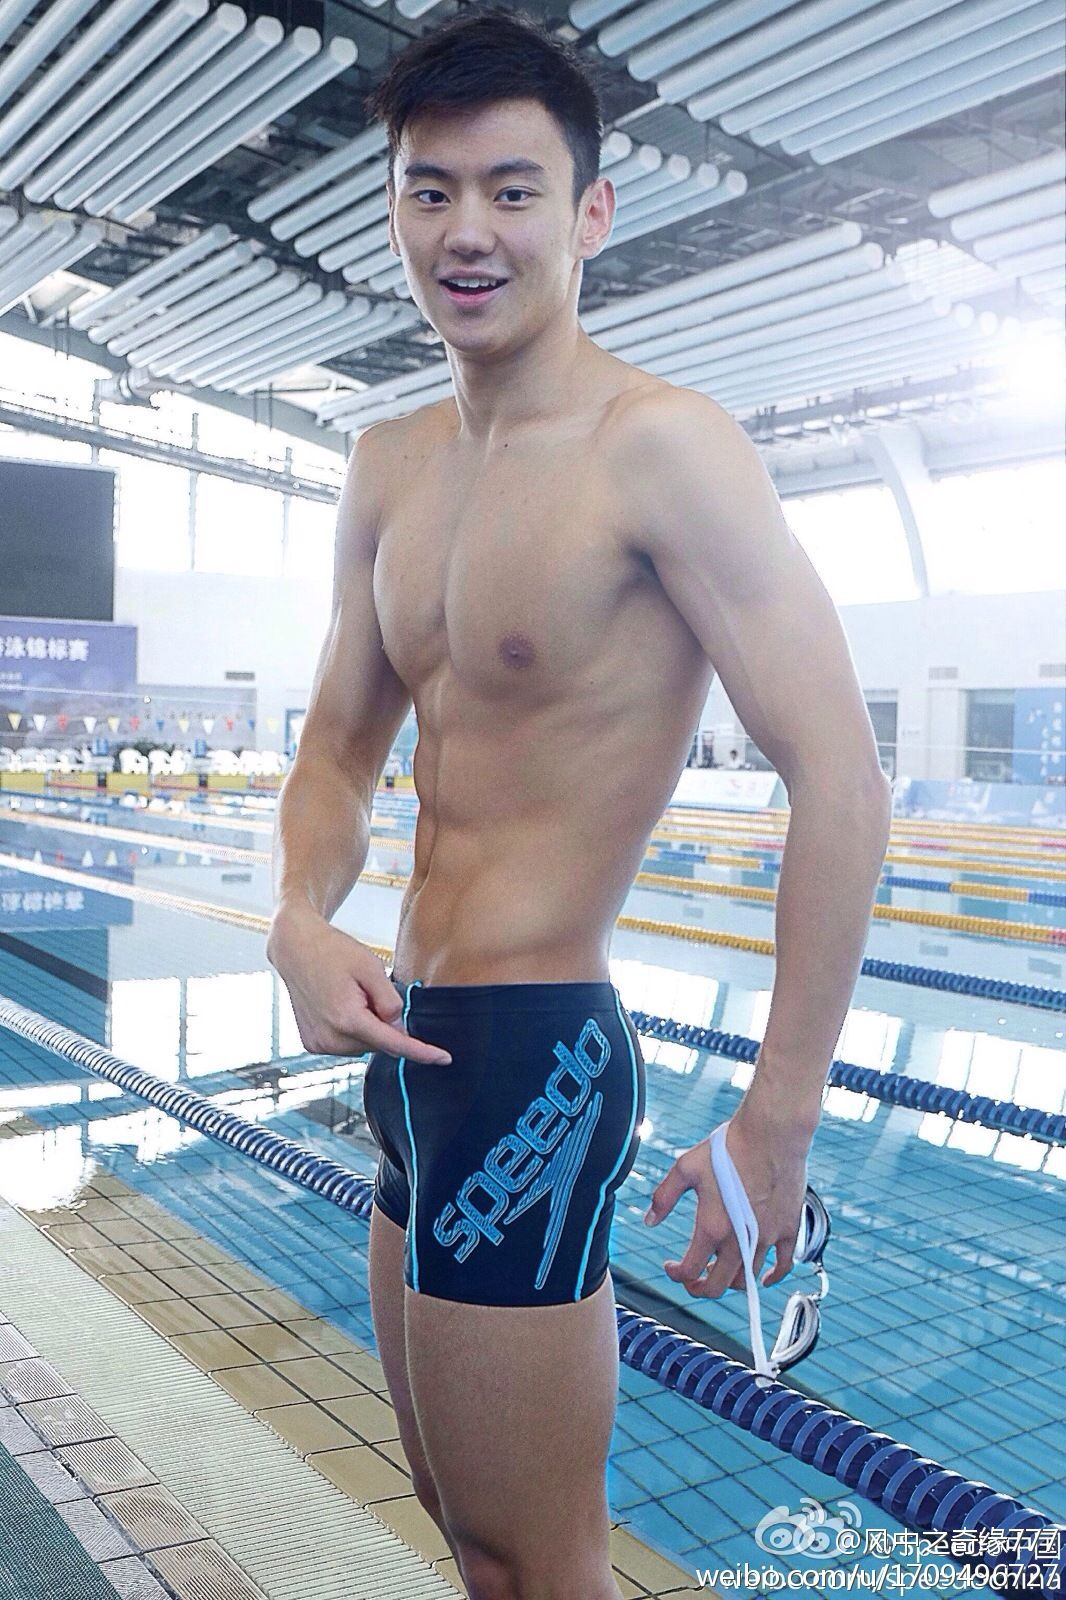 Chinese guys swimming